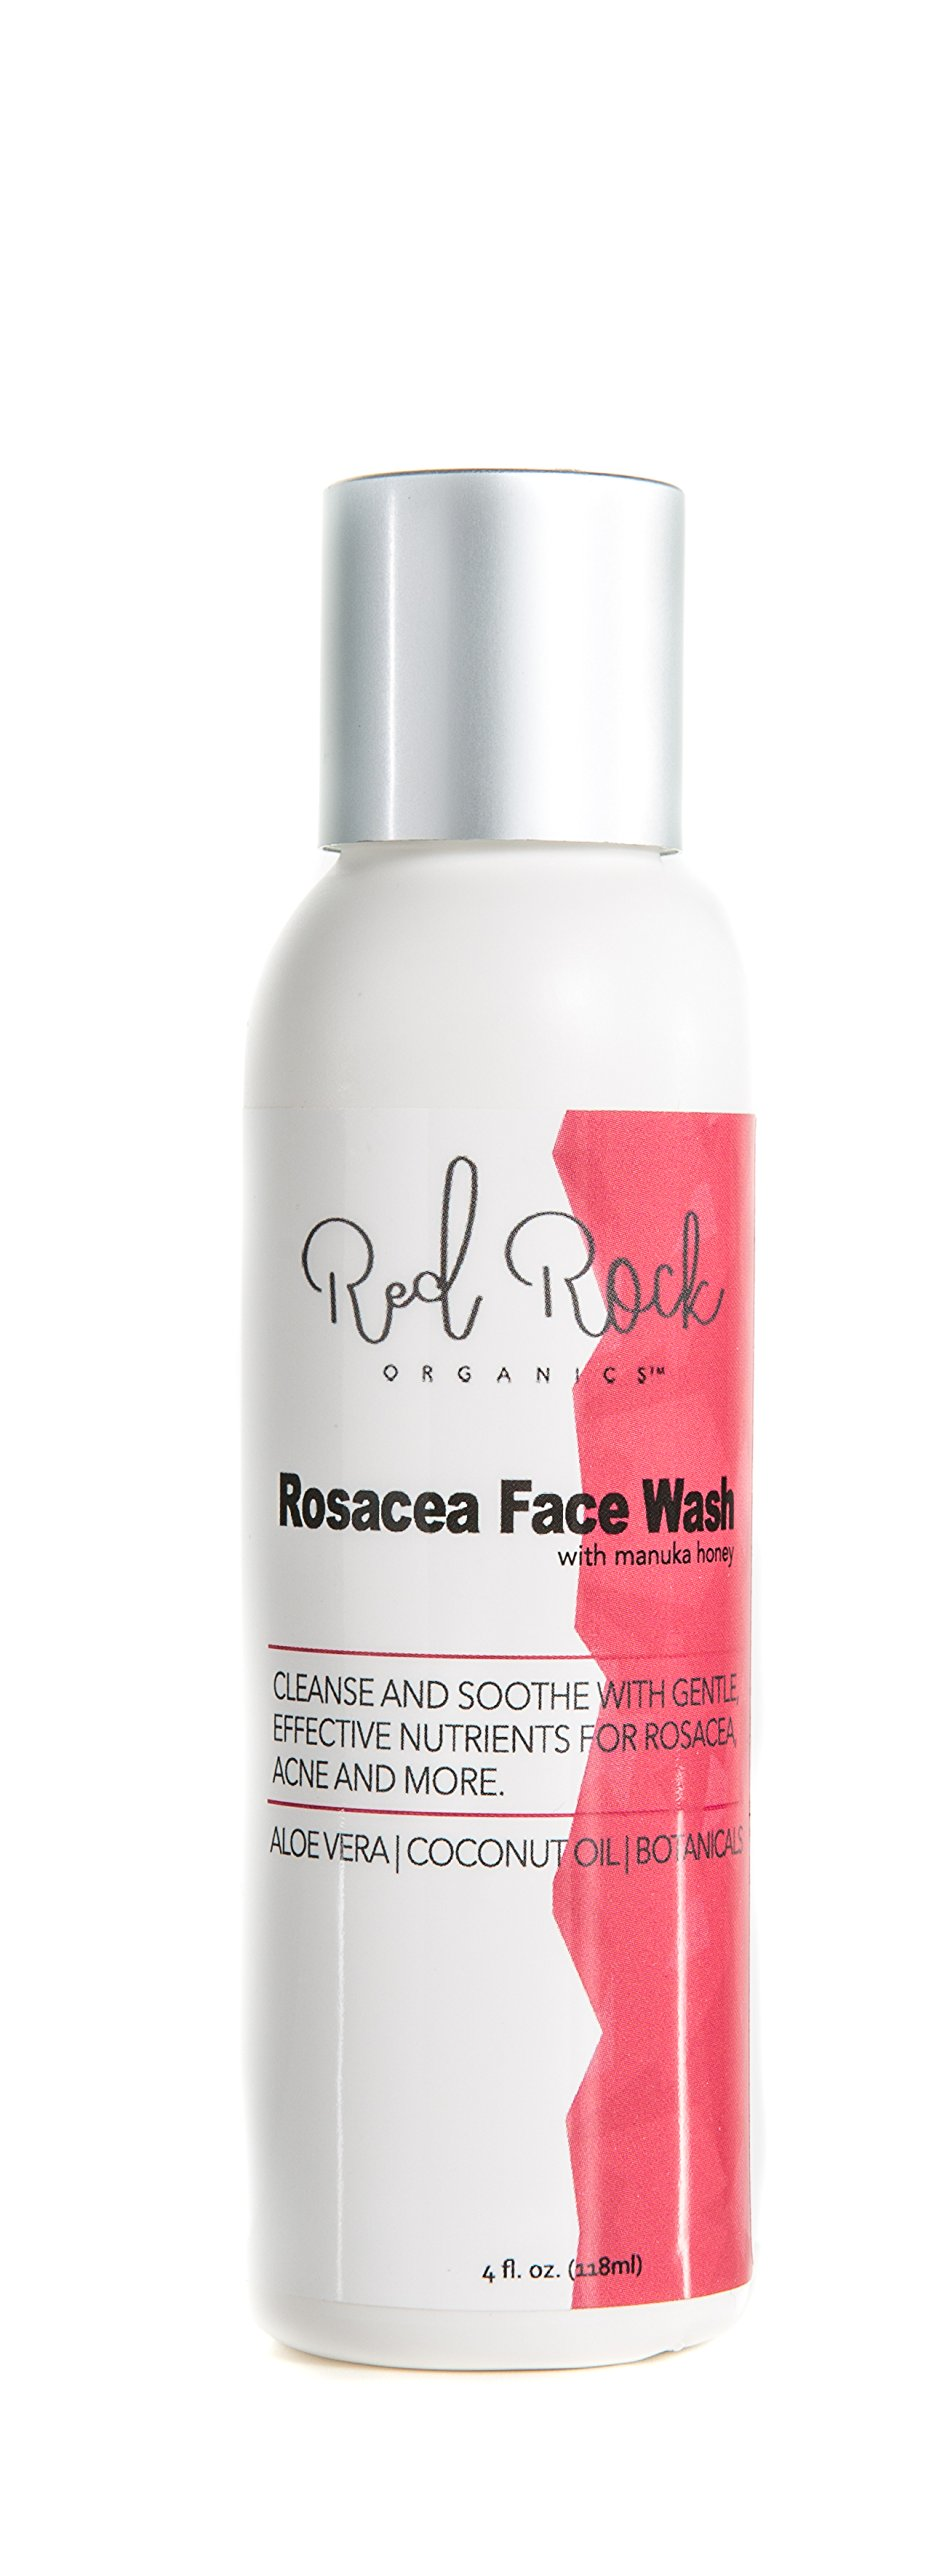 hairless-pussy-rosacea-facial-wash-putting